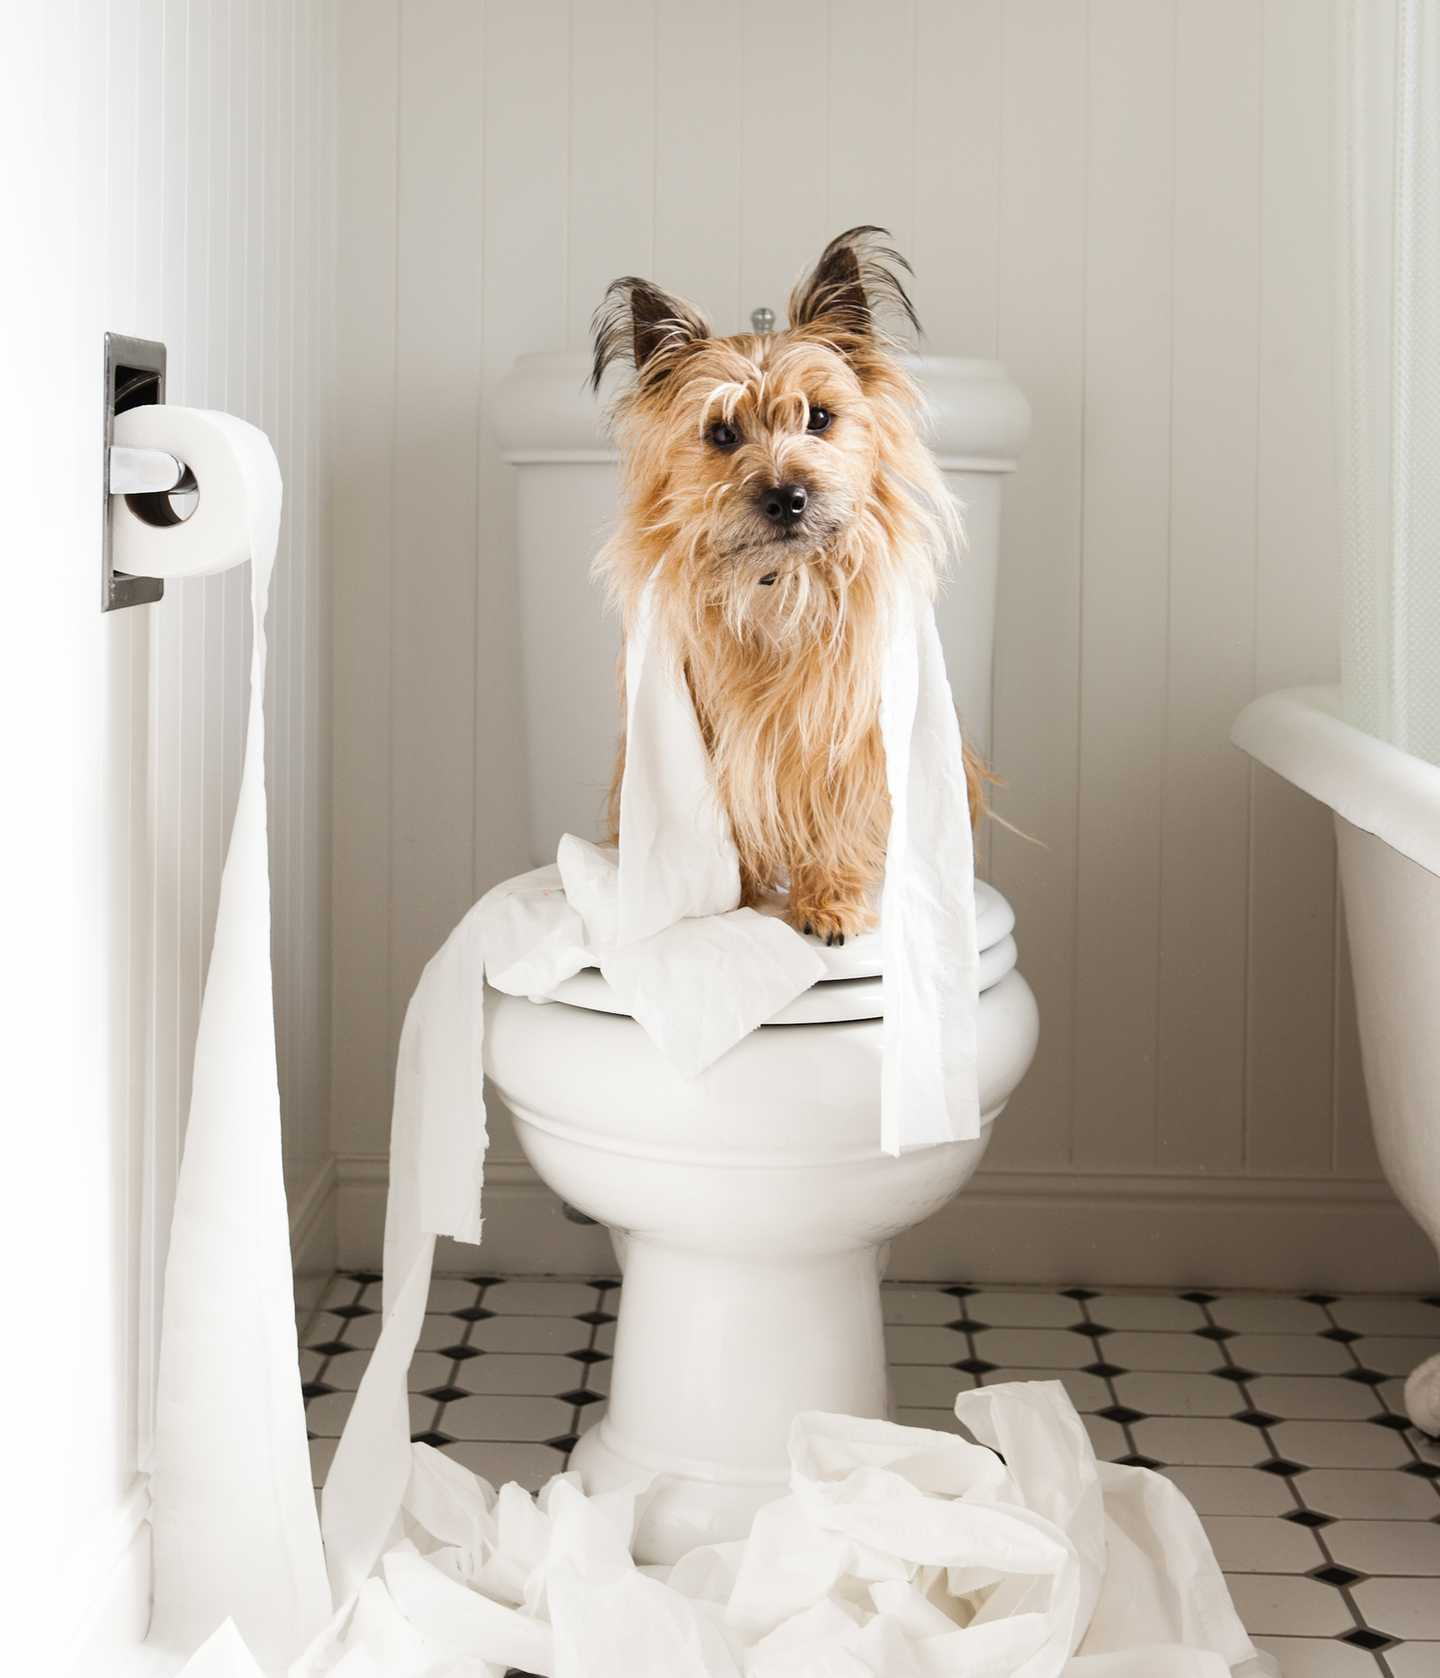 Small dog sitting on closed toilet with toilet paper strewn around